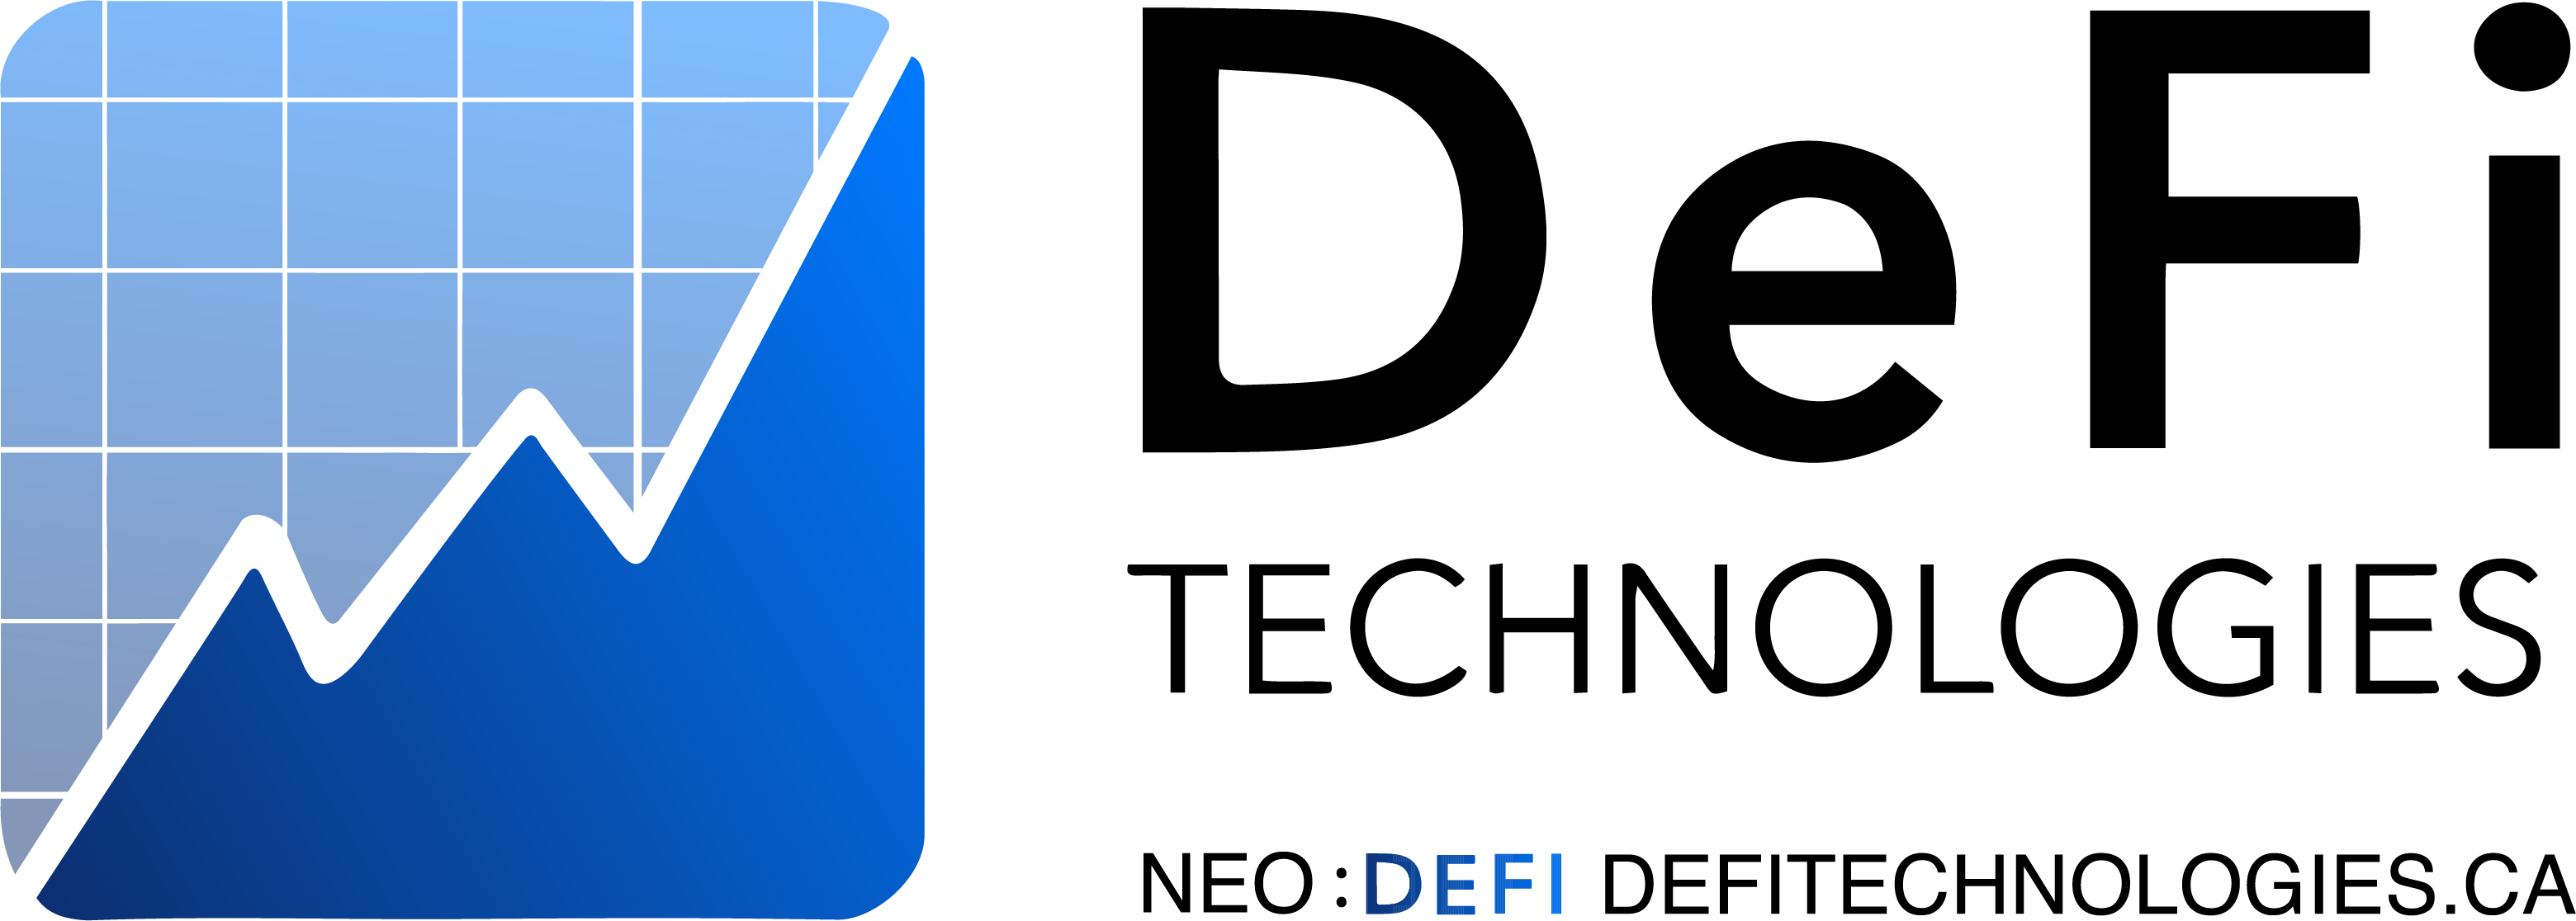 DeFi Technologies Inc.